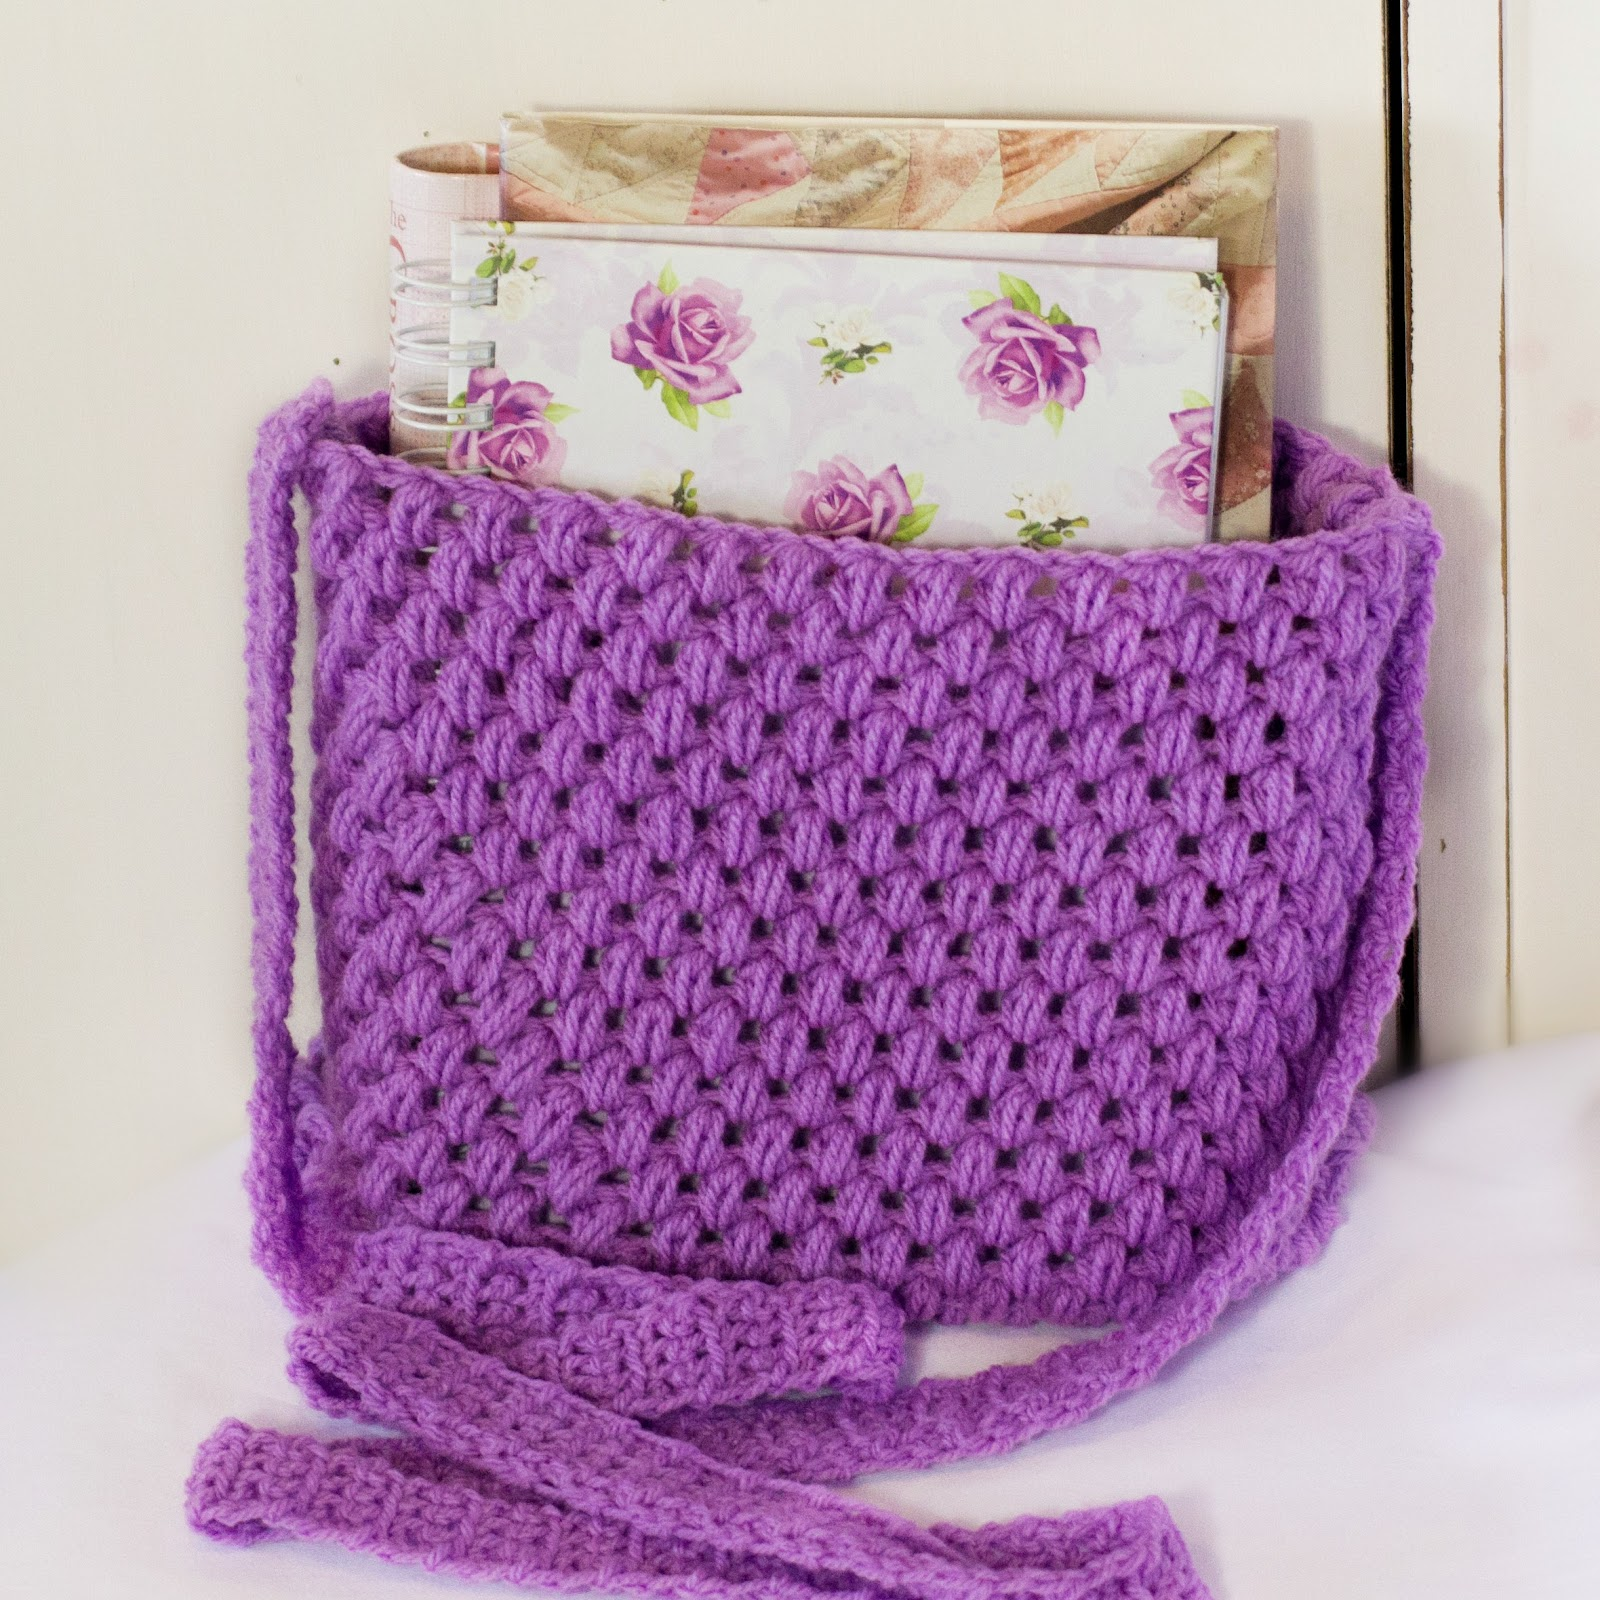 Free Crochet Purse And Bag Patterns : ... Craft, Crochet, Create: Out and About ~ Easy Tote Bag Crochet Pattern